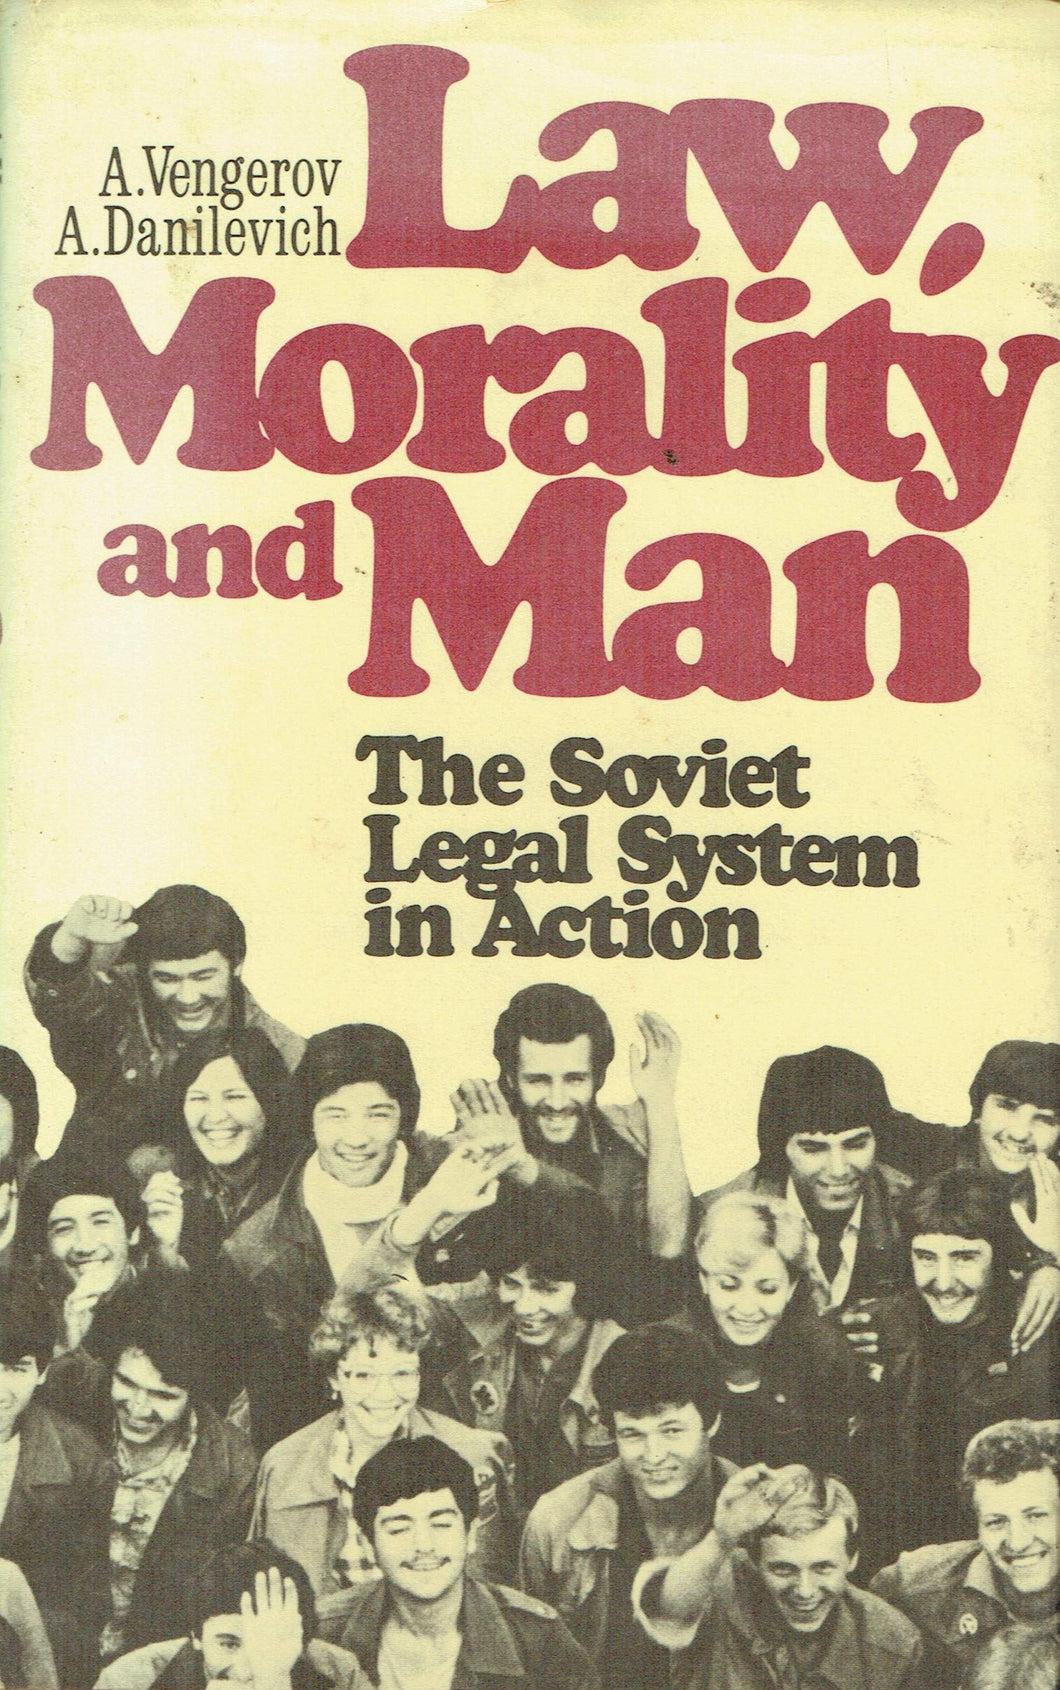 Law, Morality And Man: The Soviet Legal System In Action